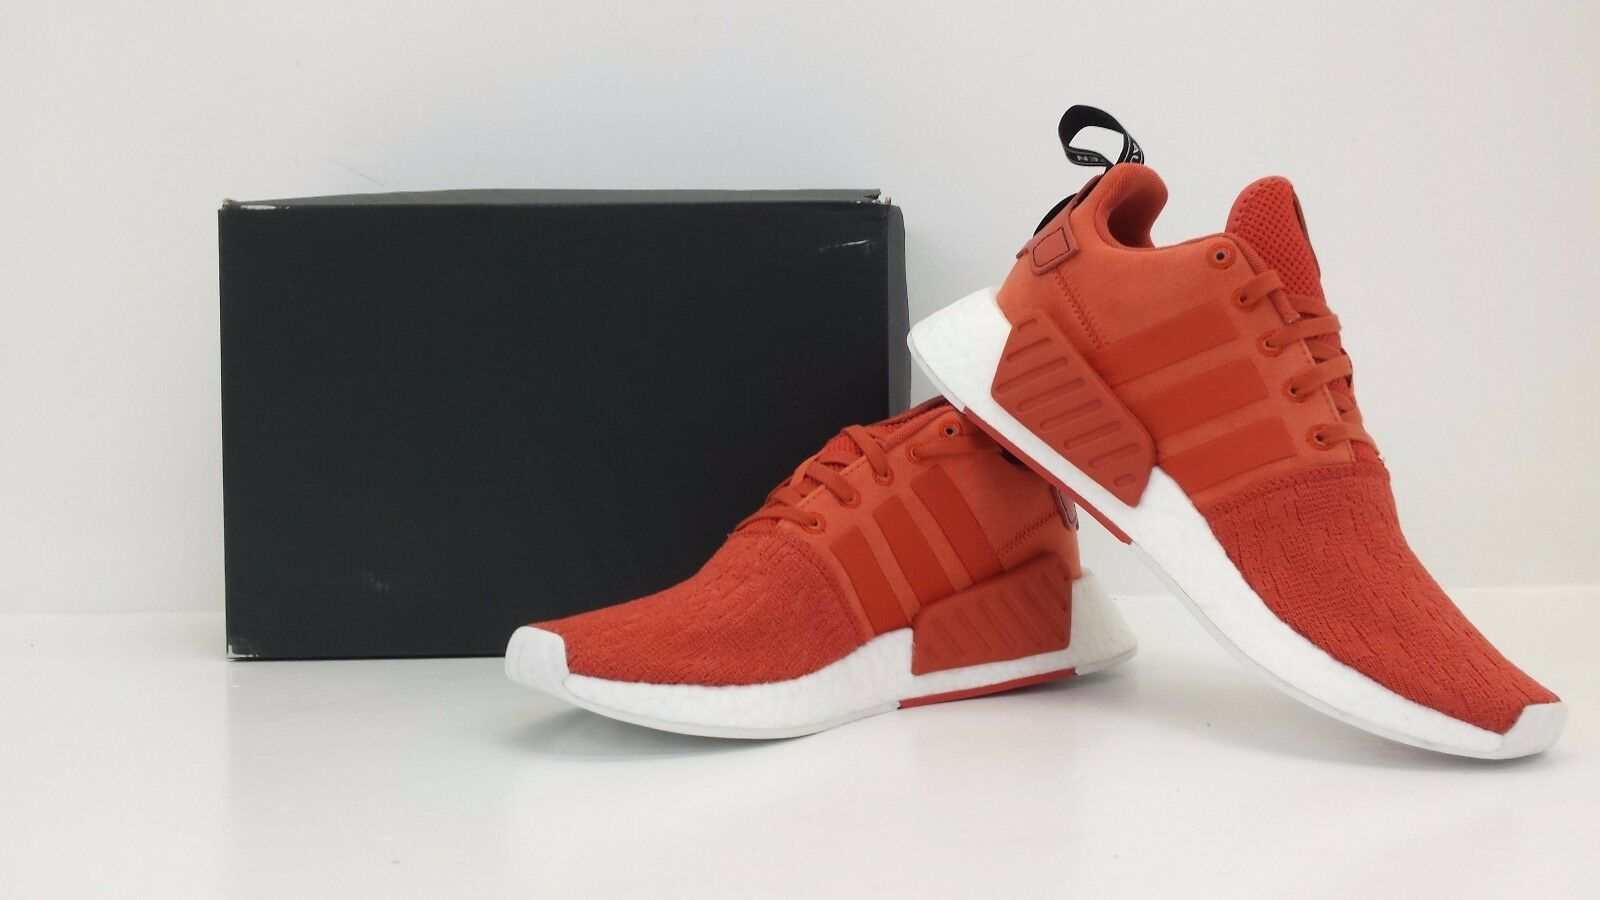 Adidas NMD_R2 Nomad BY9915 Future Harvest Orange Sizes 8 to 13 BRAND NEW IN BOX